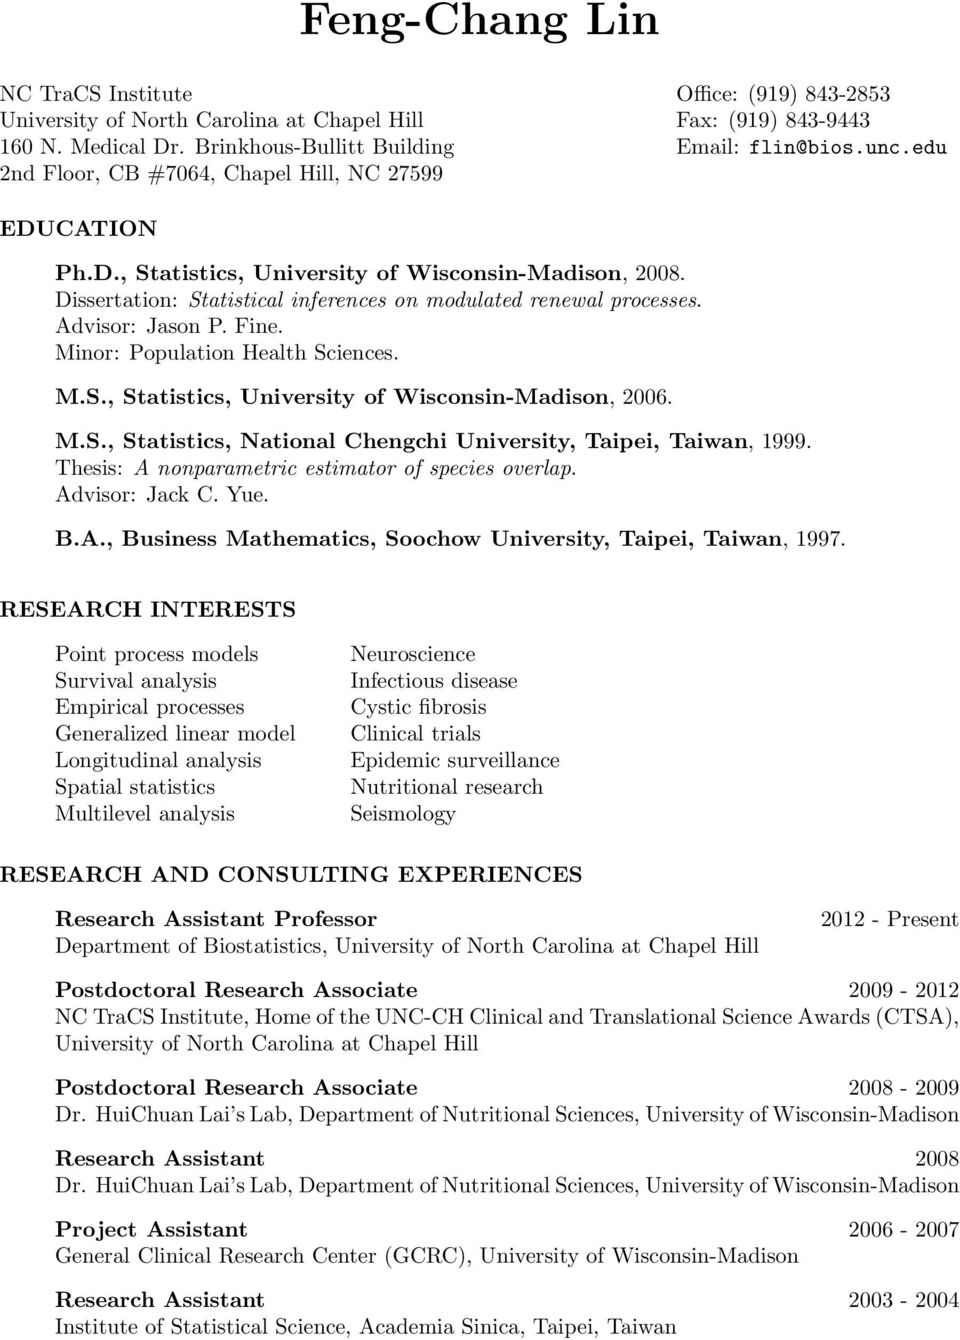 Dissertation: Statistical inferences on modulated renewal processes. Advisor: Jason P. Fine. Minor: Population Health Sciences. M.S., Statistics, University of Wisconsin-Madison, 2006. M.S., Statistics, National Chengchi University, Taipei, Taiwan, 1999.